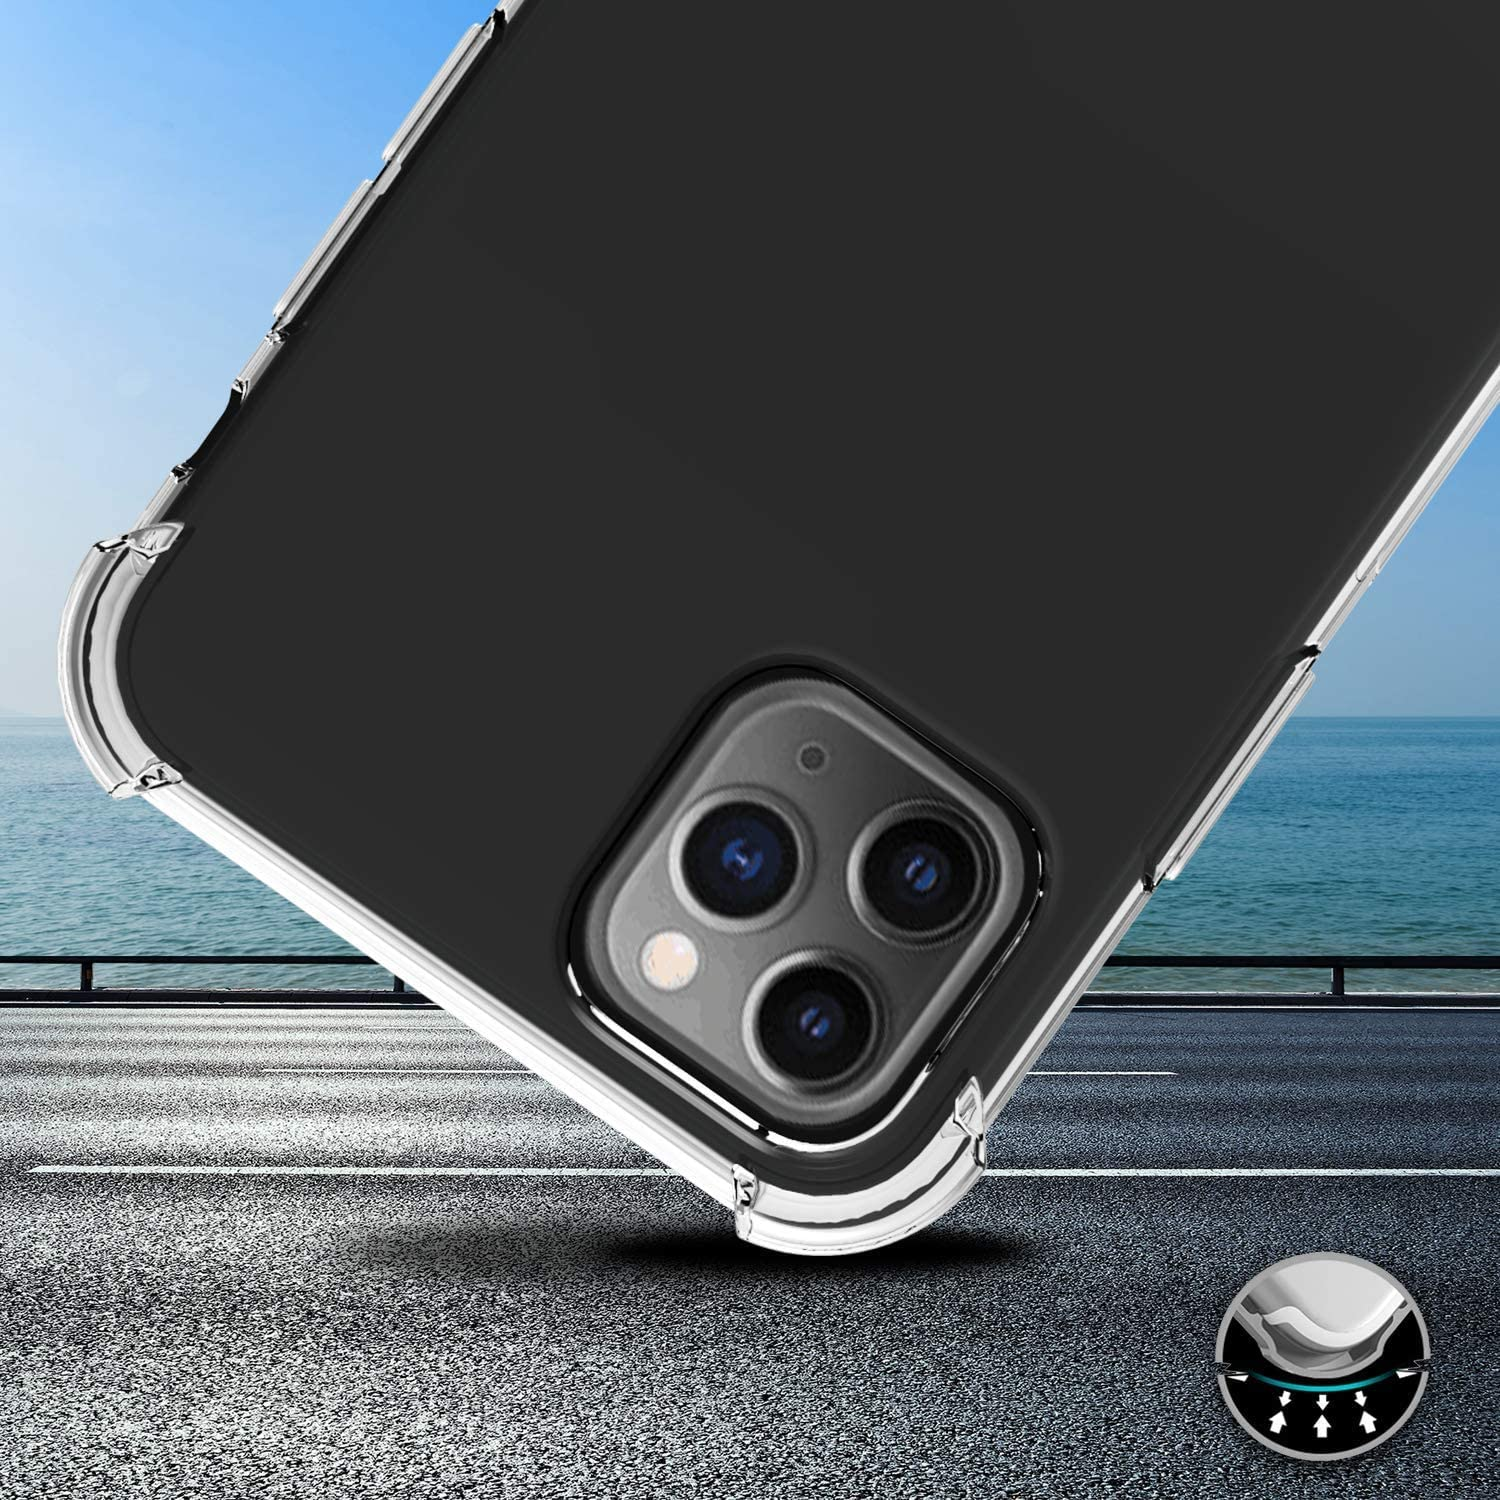 Flexible Silicone Cover for iPhone 11 Pro Max 6.5 Inch 1.1 mm Thick Back Case Clear Shock-absorbing Air-Guard Corners iPhone 11 Pro Max Case iPhone 11 Pro Max Cover with Slim Clear Soft TPU